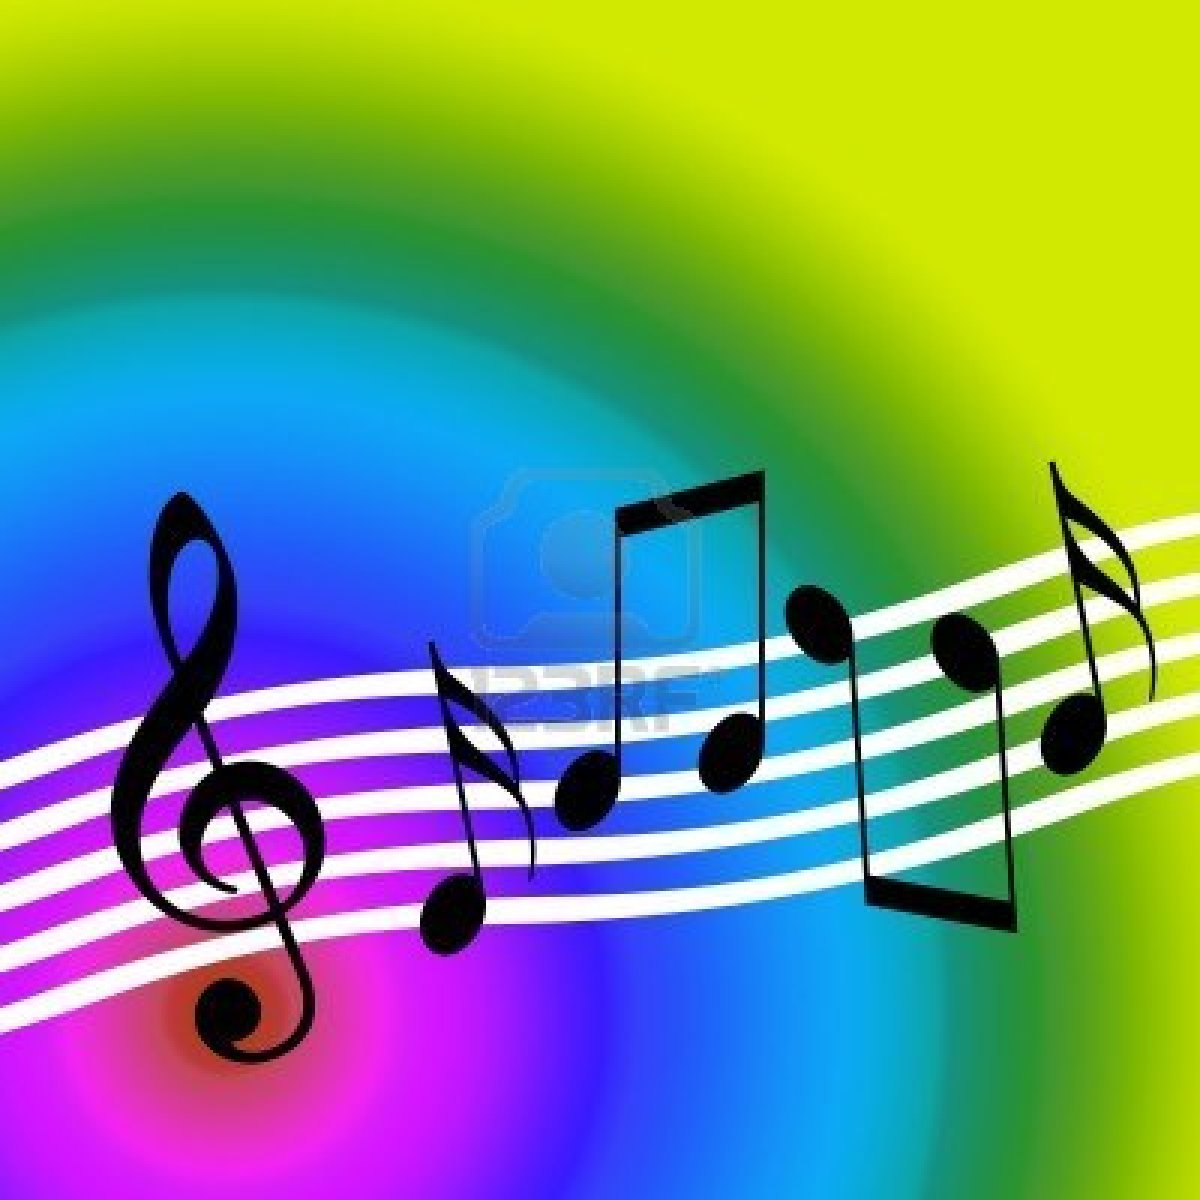 music emblems clipart - photo #42